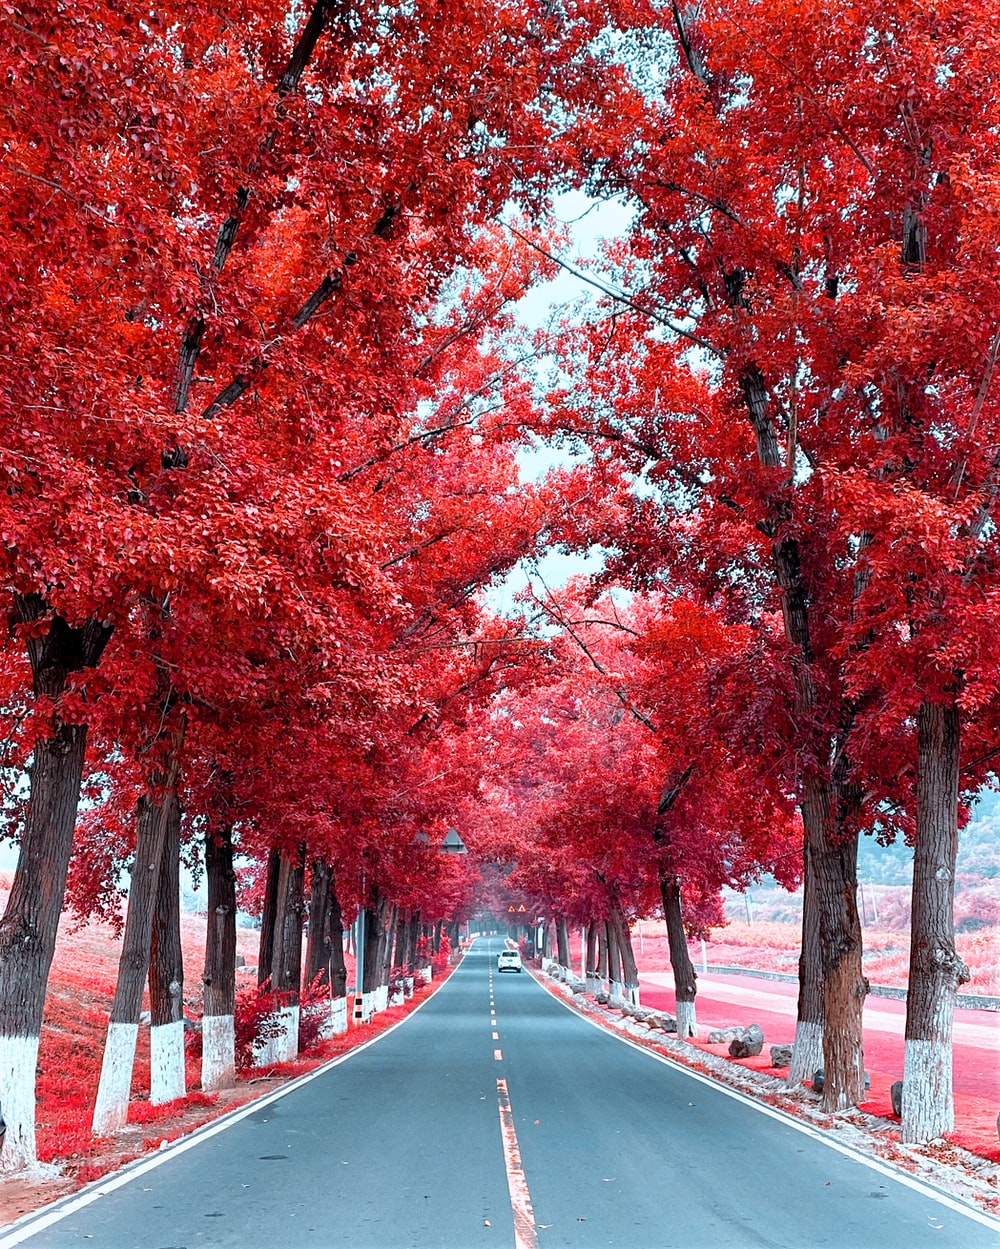 brown and orange trees on gray concrete road during daytime